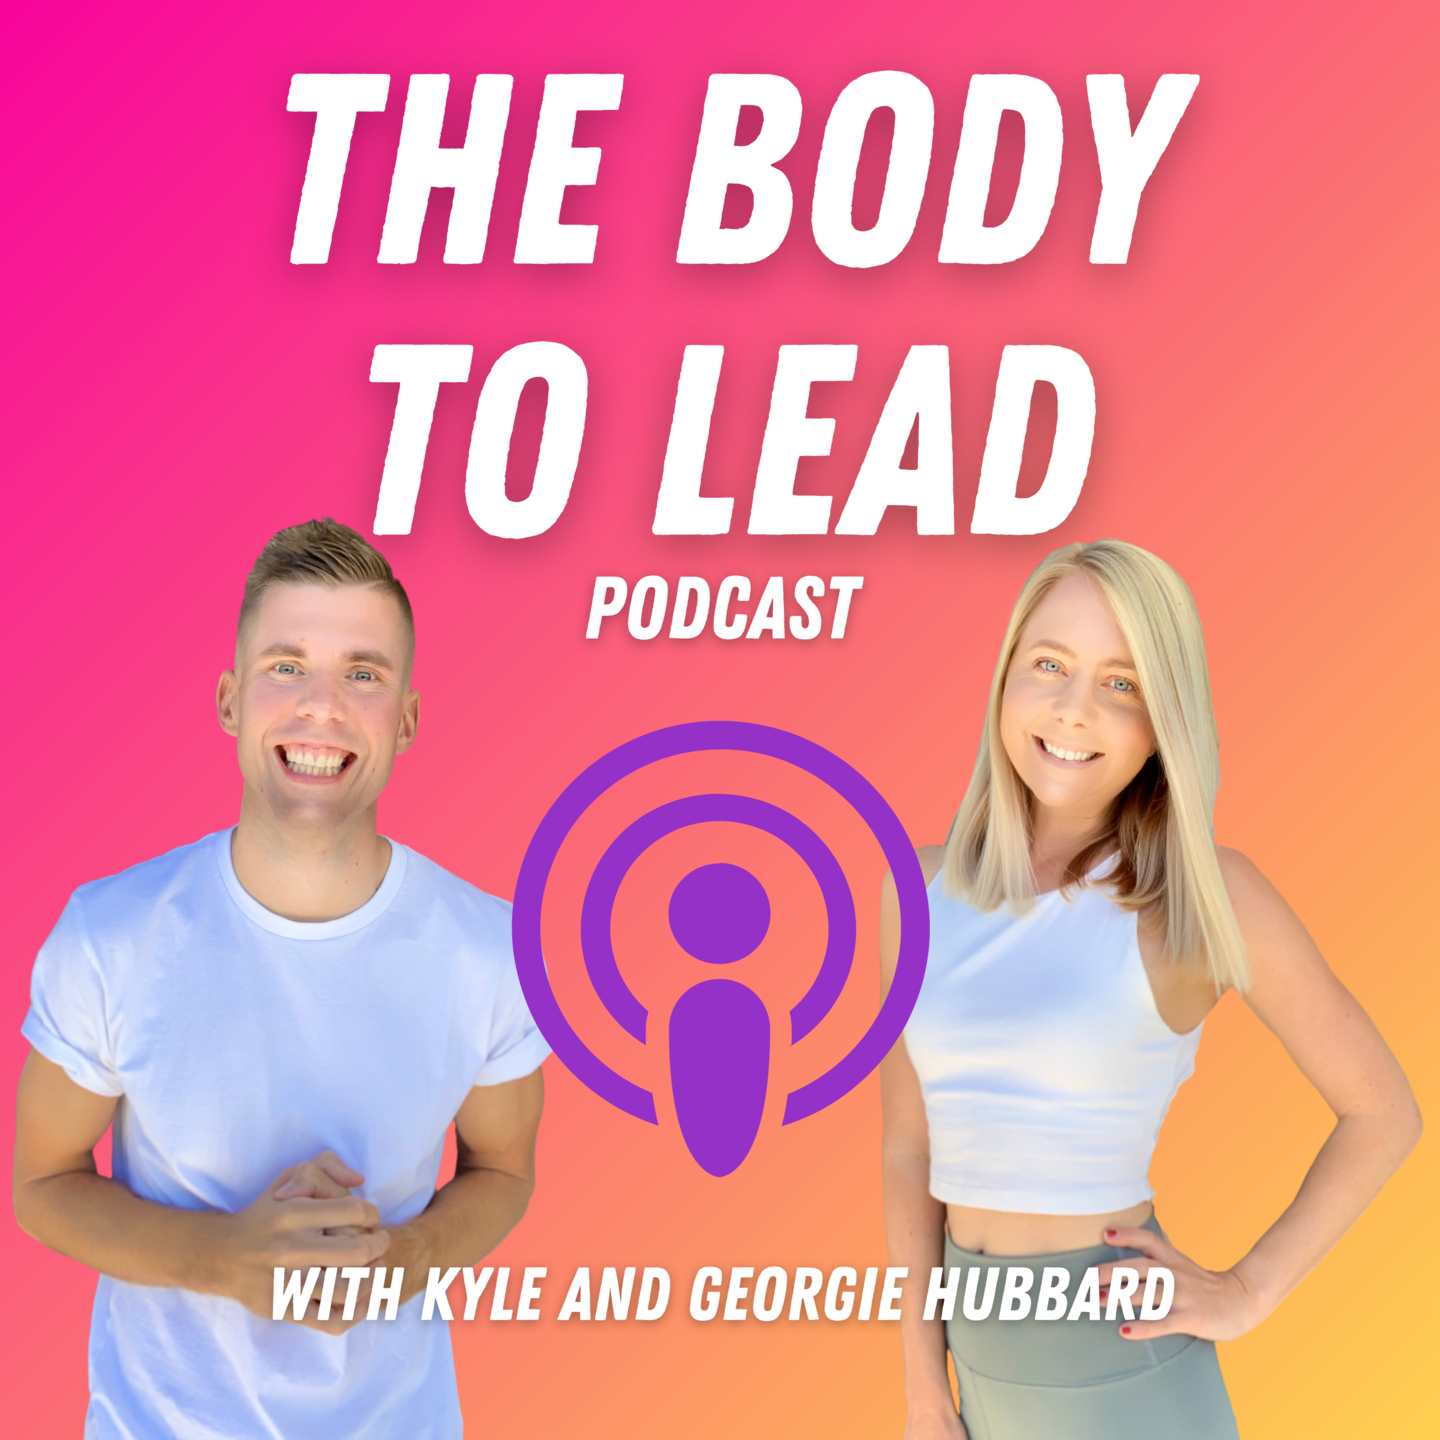 The Body to Lead podcast Apple